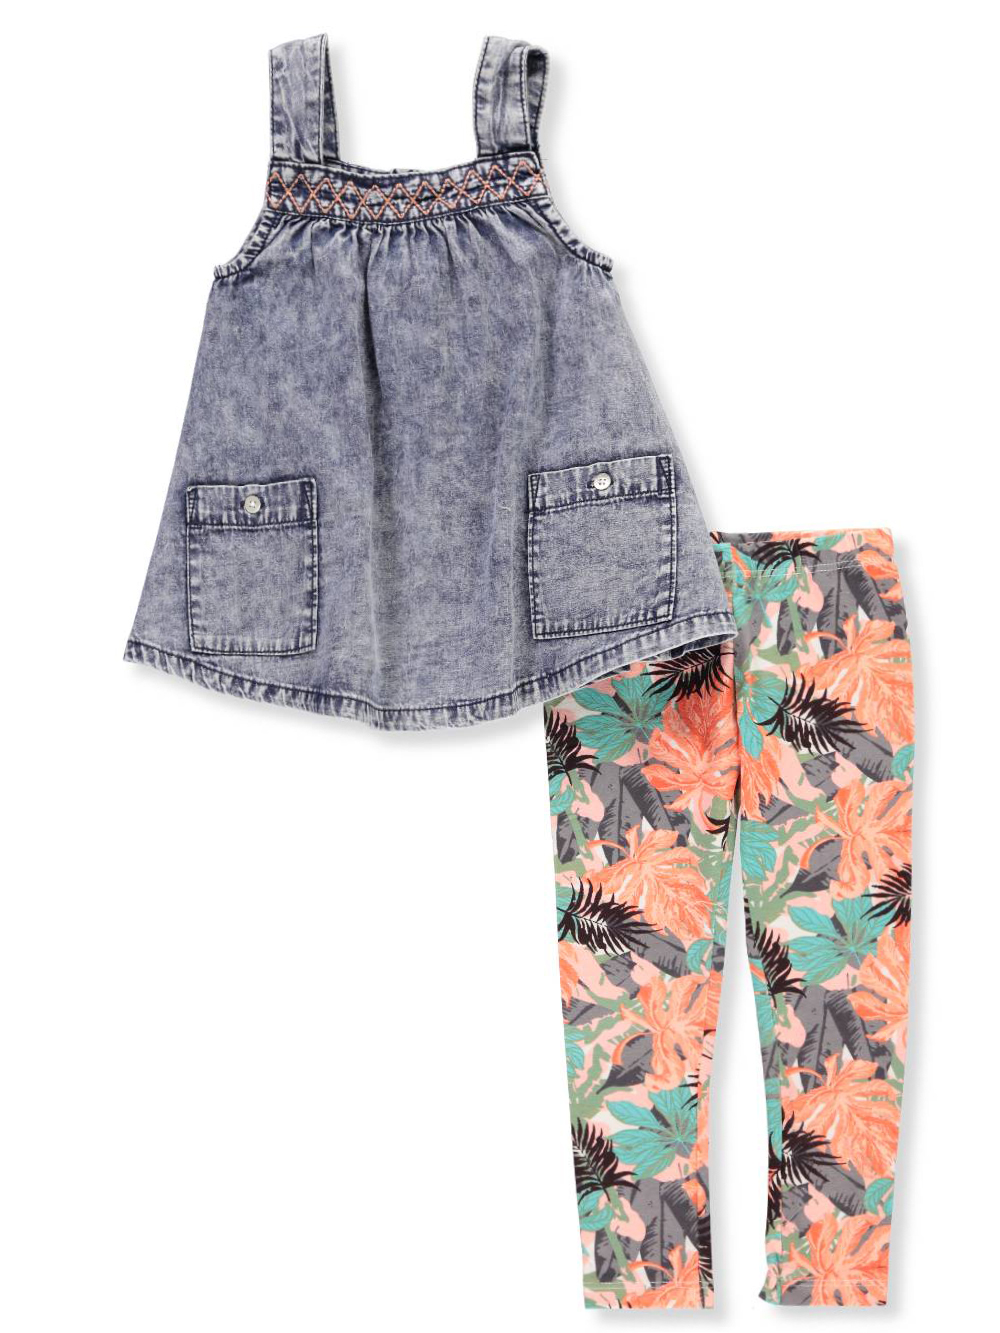 Jessica Simpson Baby Girls 2 Piece Outfit